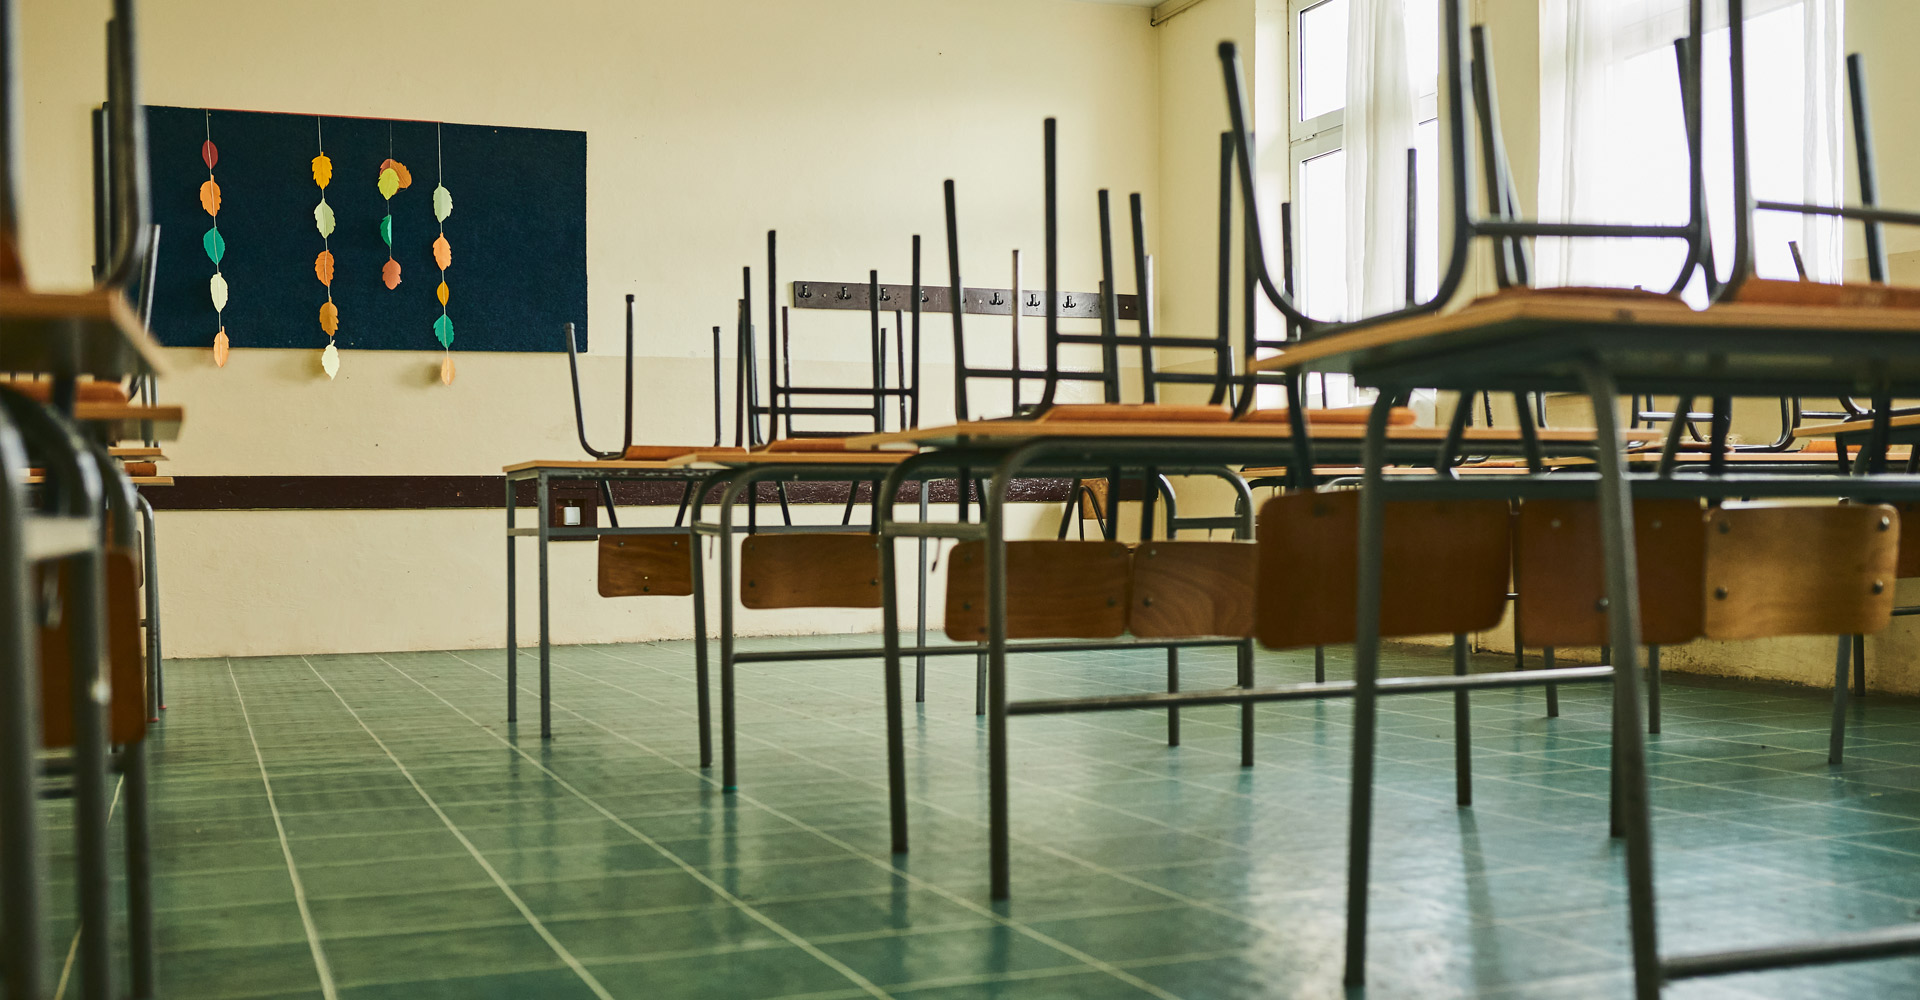 Back-to-school Tips For A Surprise Quarantine | Avast